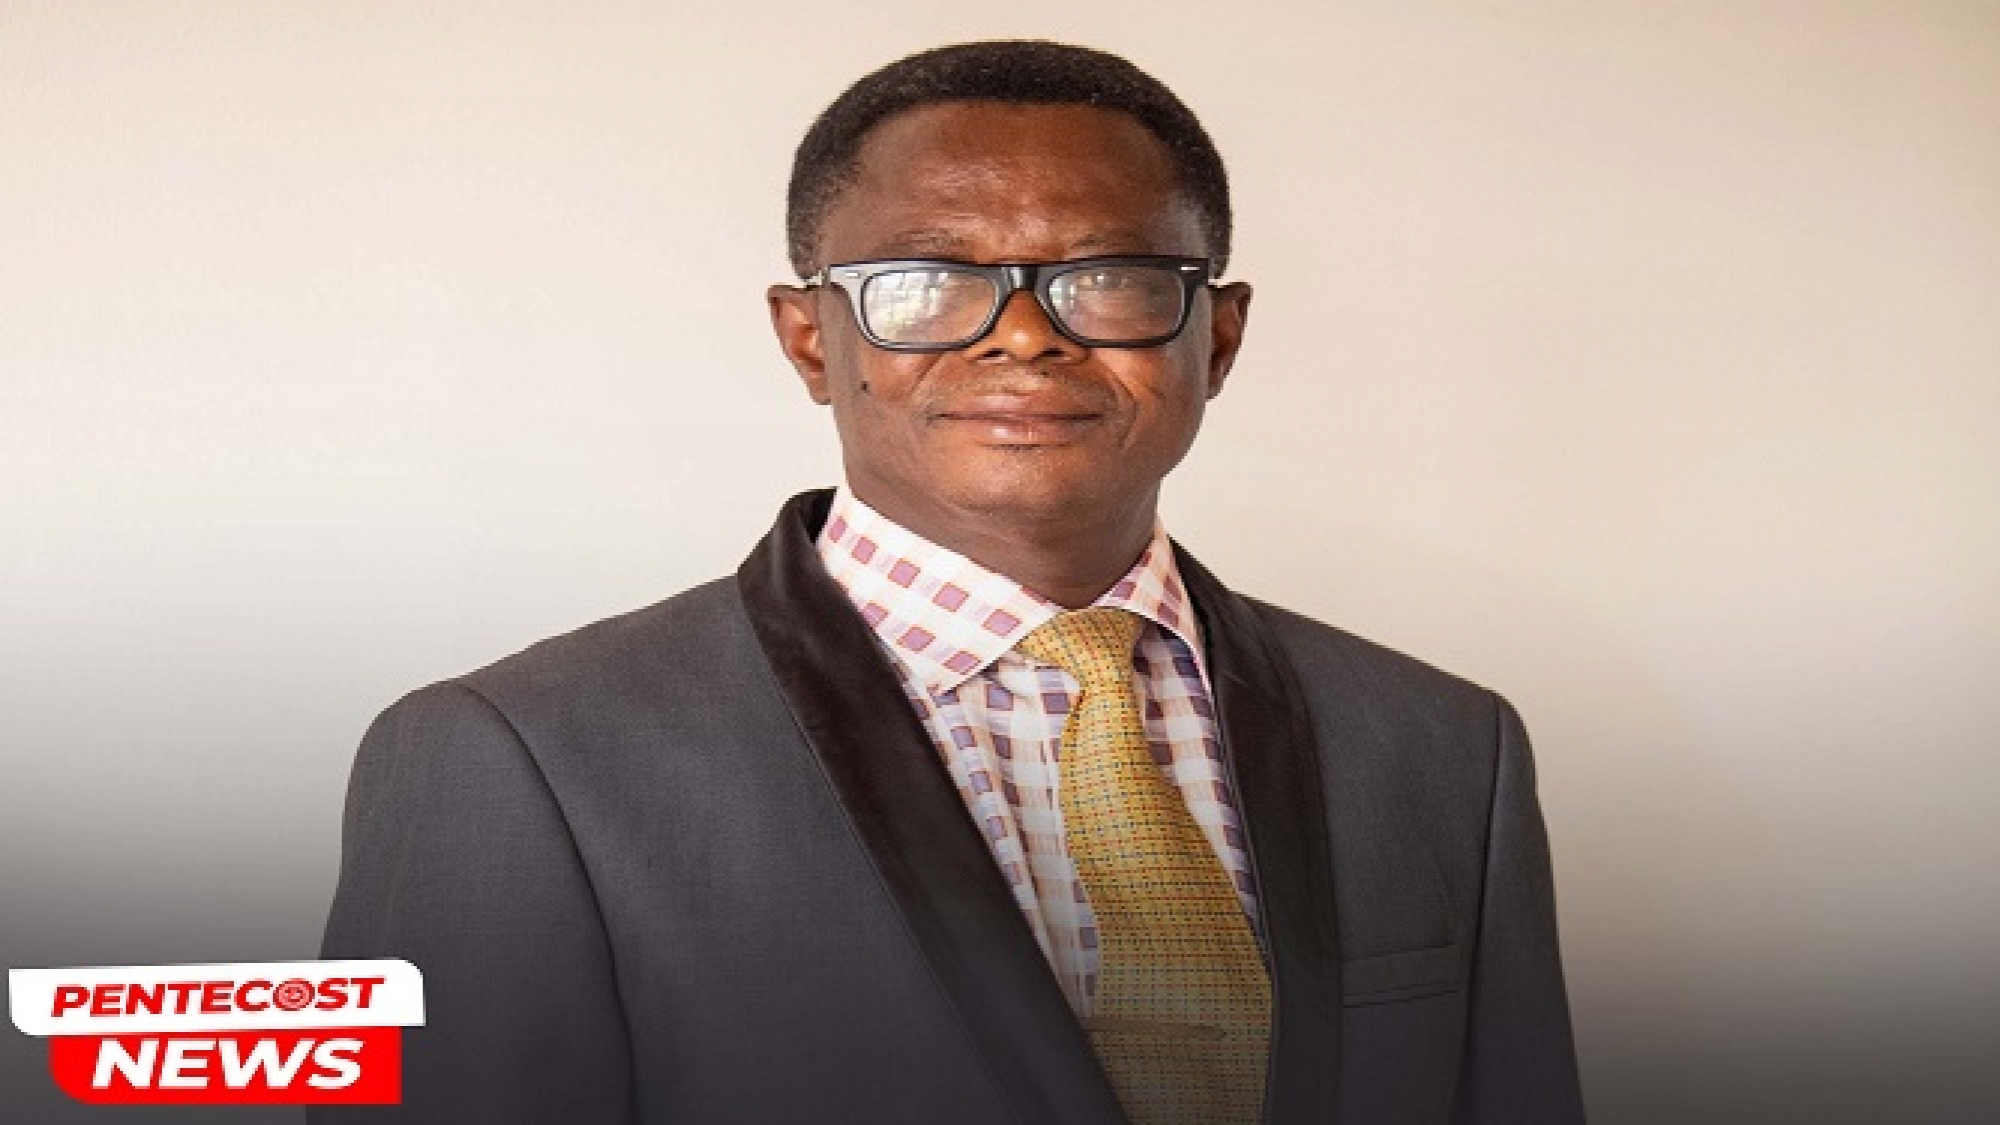 Manifest The Glory And Beauty Of God - Apostle Obeng Andoh Charges Christians 1